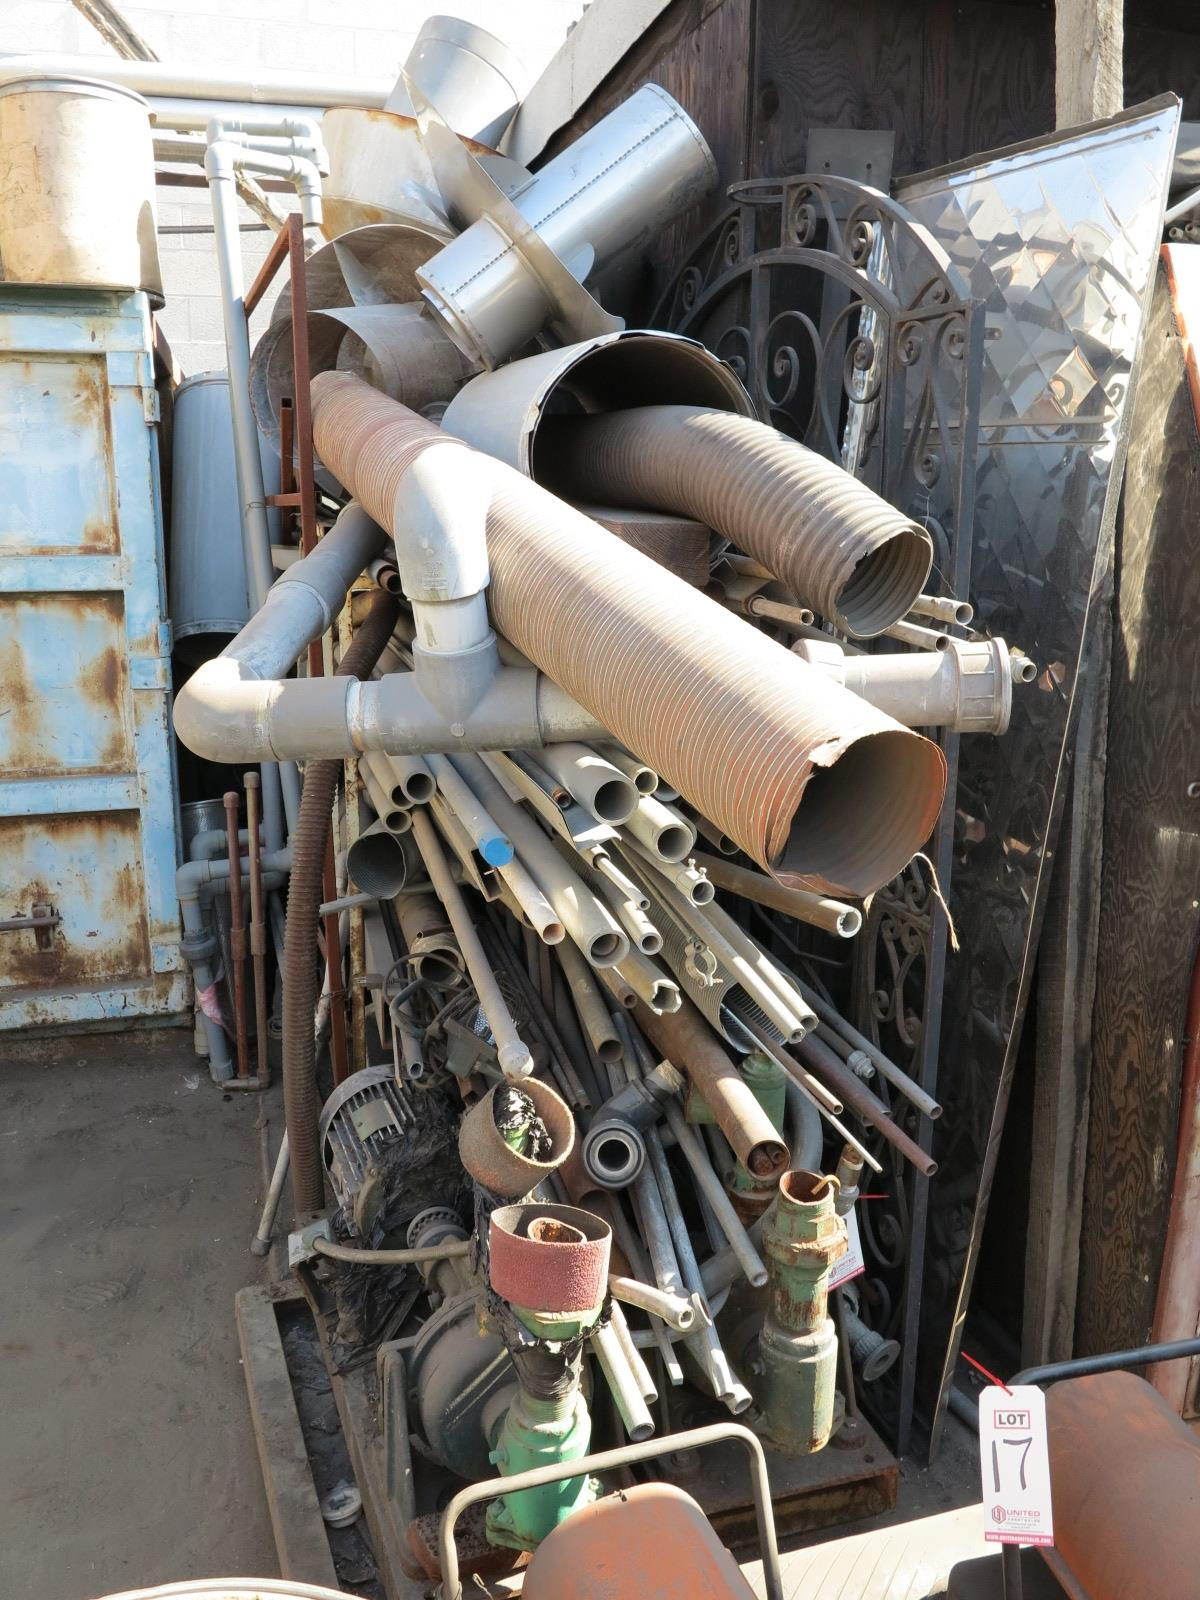 LOT - RACK W/ CONTENTS: PIPE, EMT, STEEL, (2) ELECTRIC PUMPS - Image 3 of 3